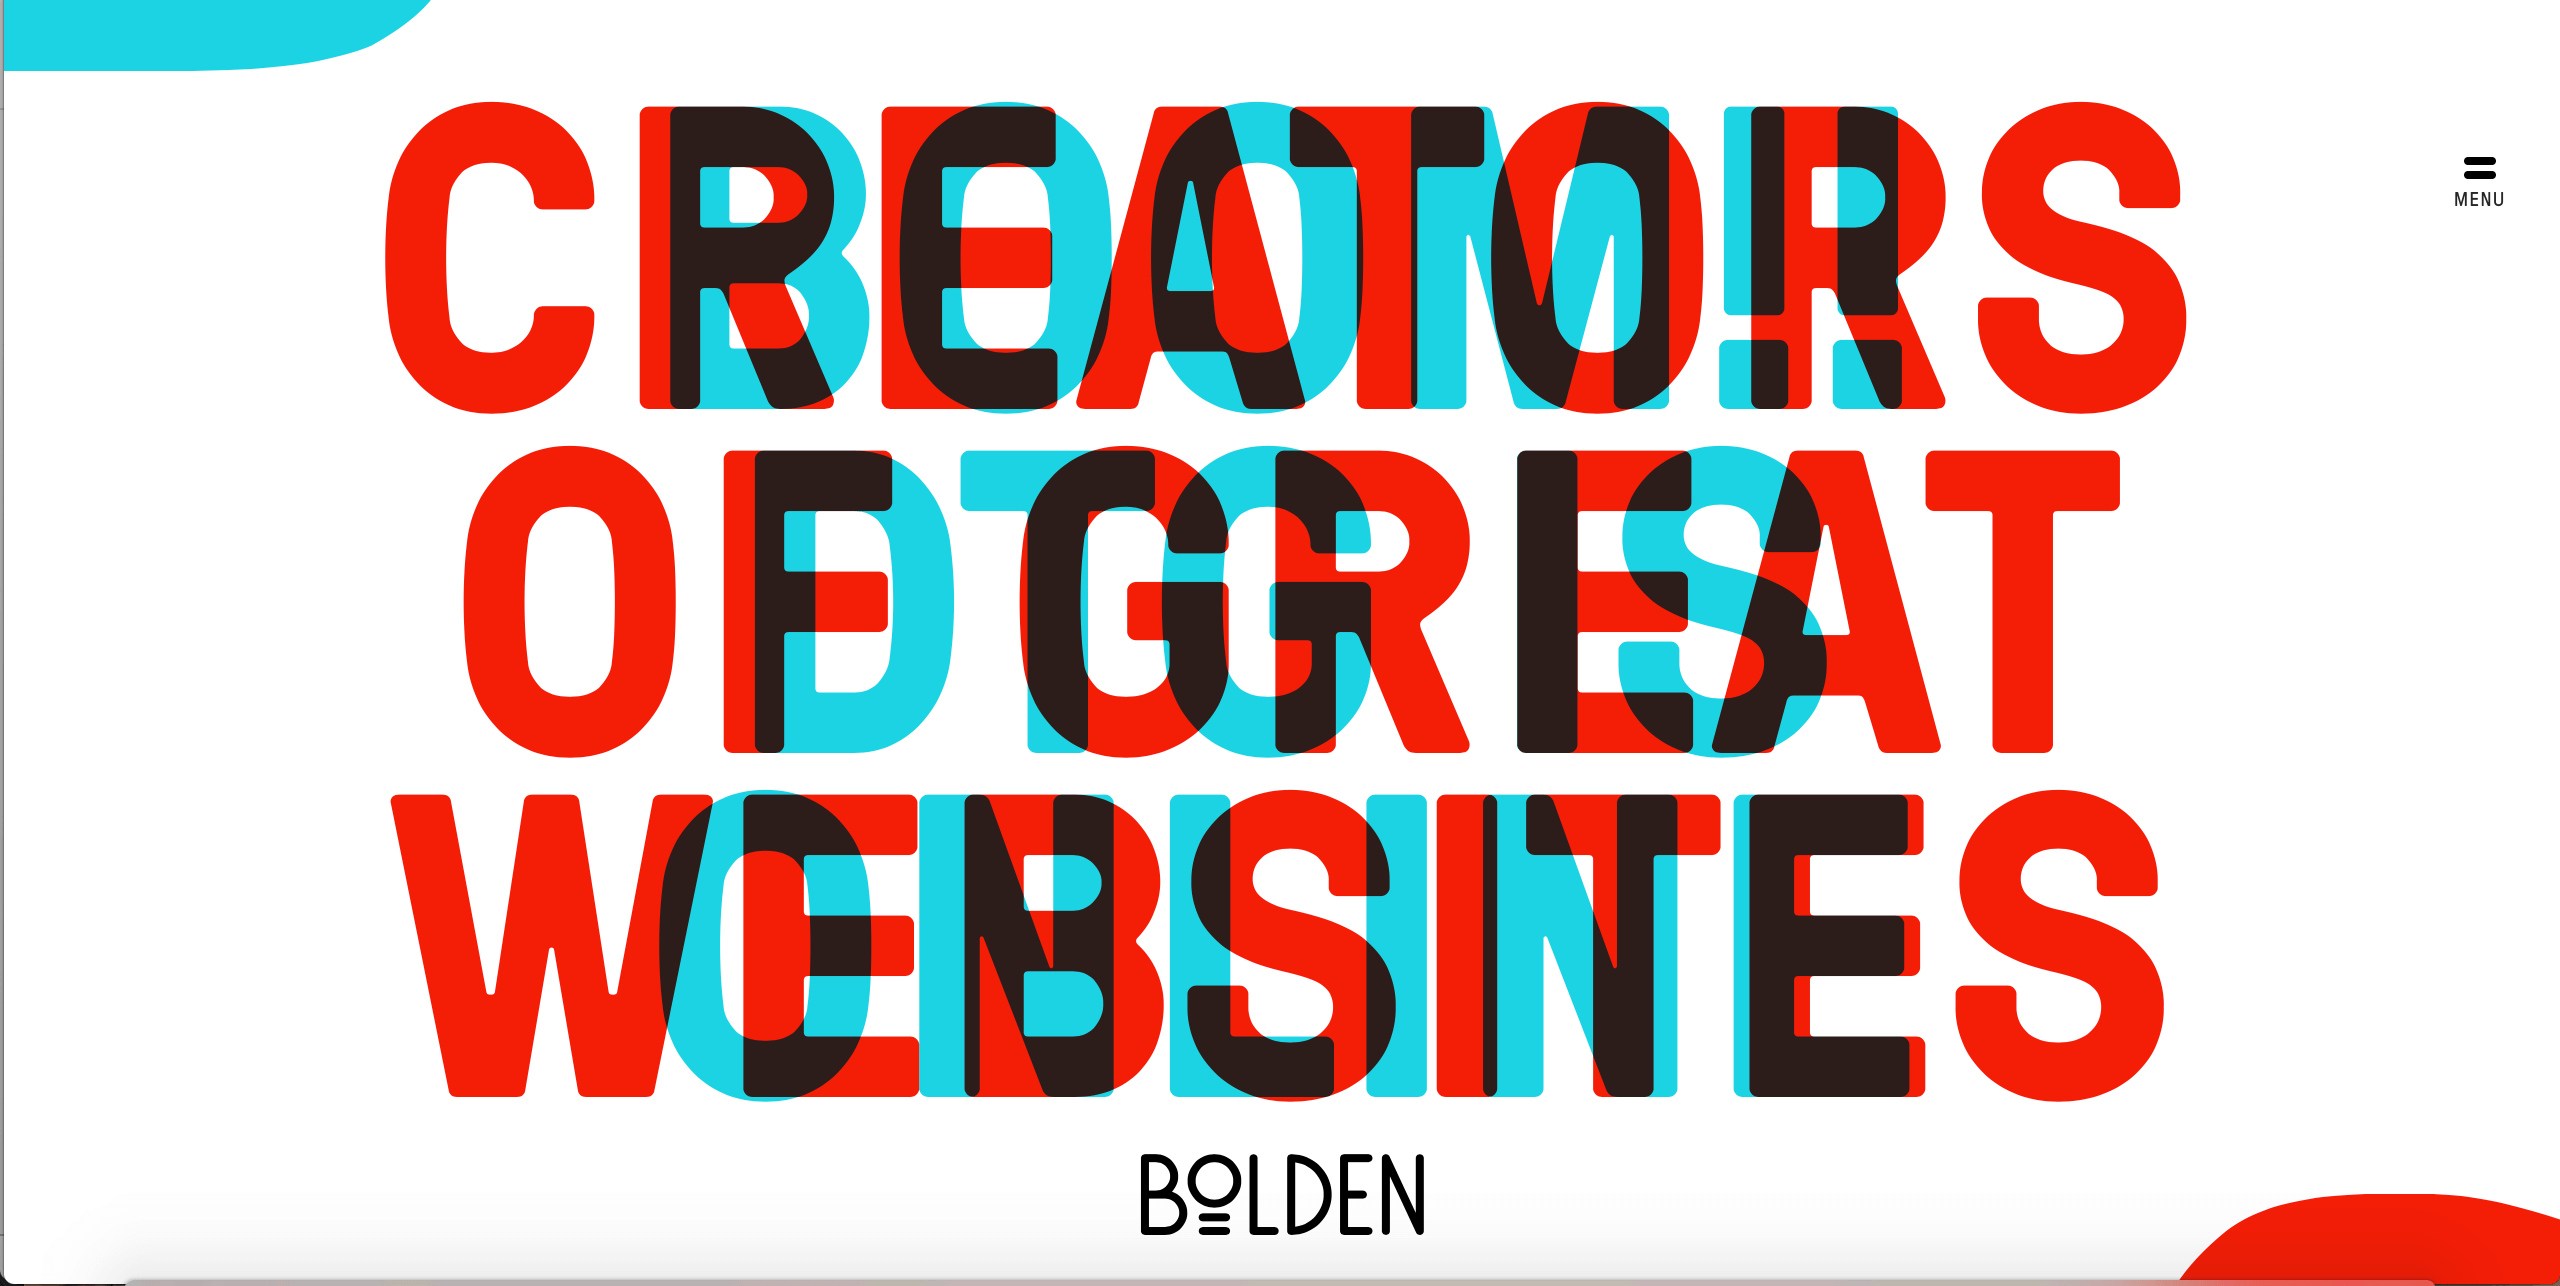 Bolden Website - Example of Bright Website Design Trend 2018